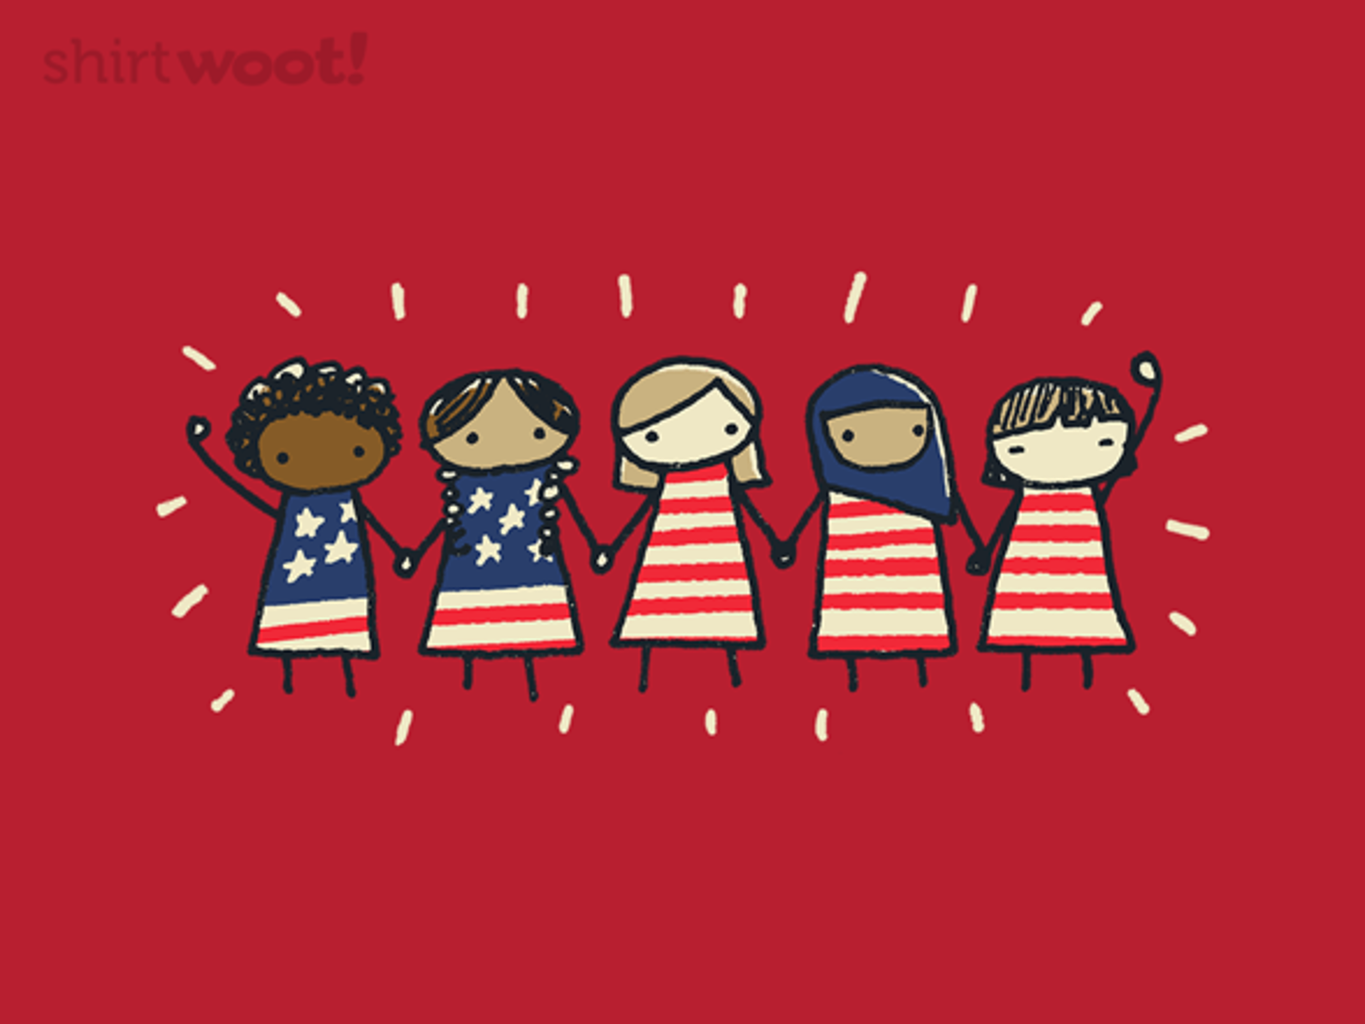 Woot!: All Together